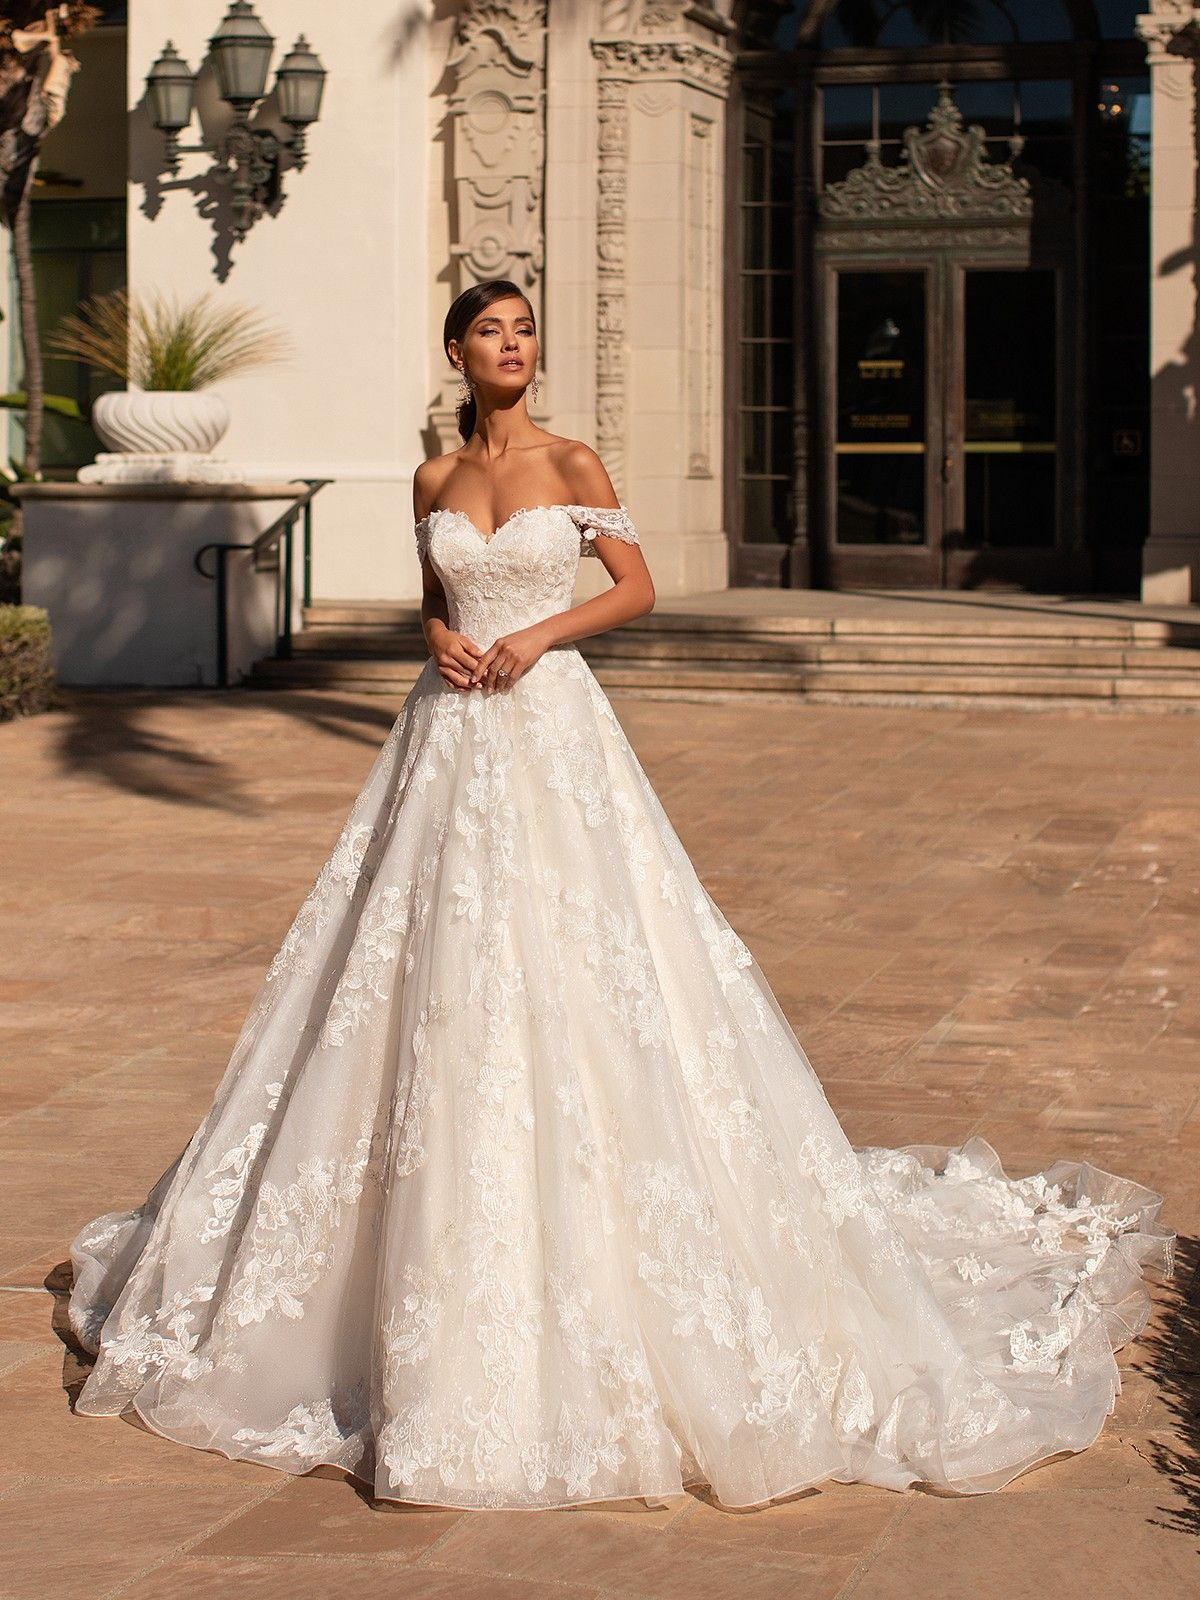 Princess Sparkly Lace Full ALine Wedding Gown with